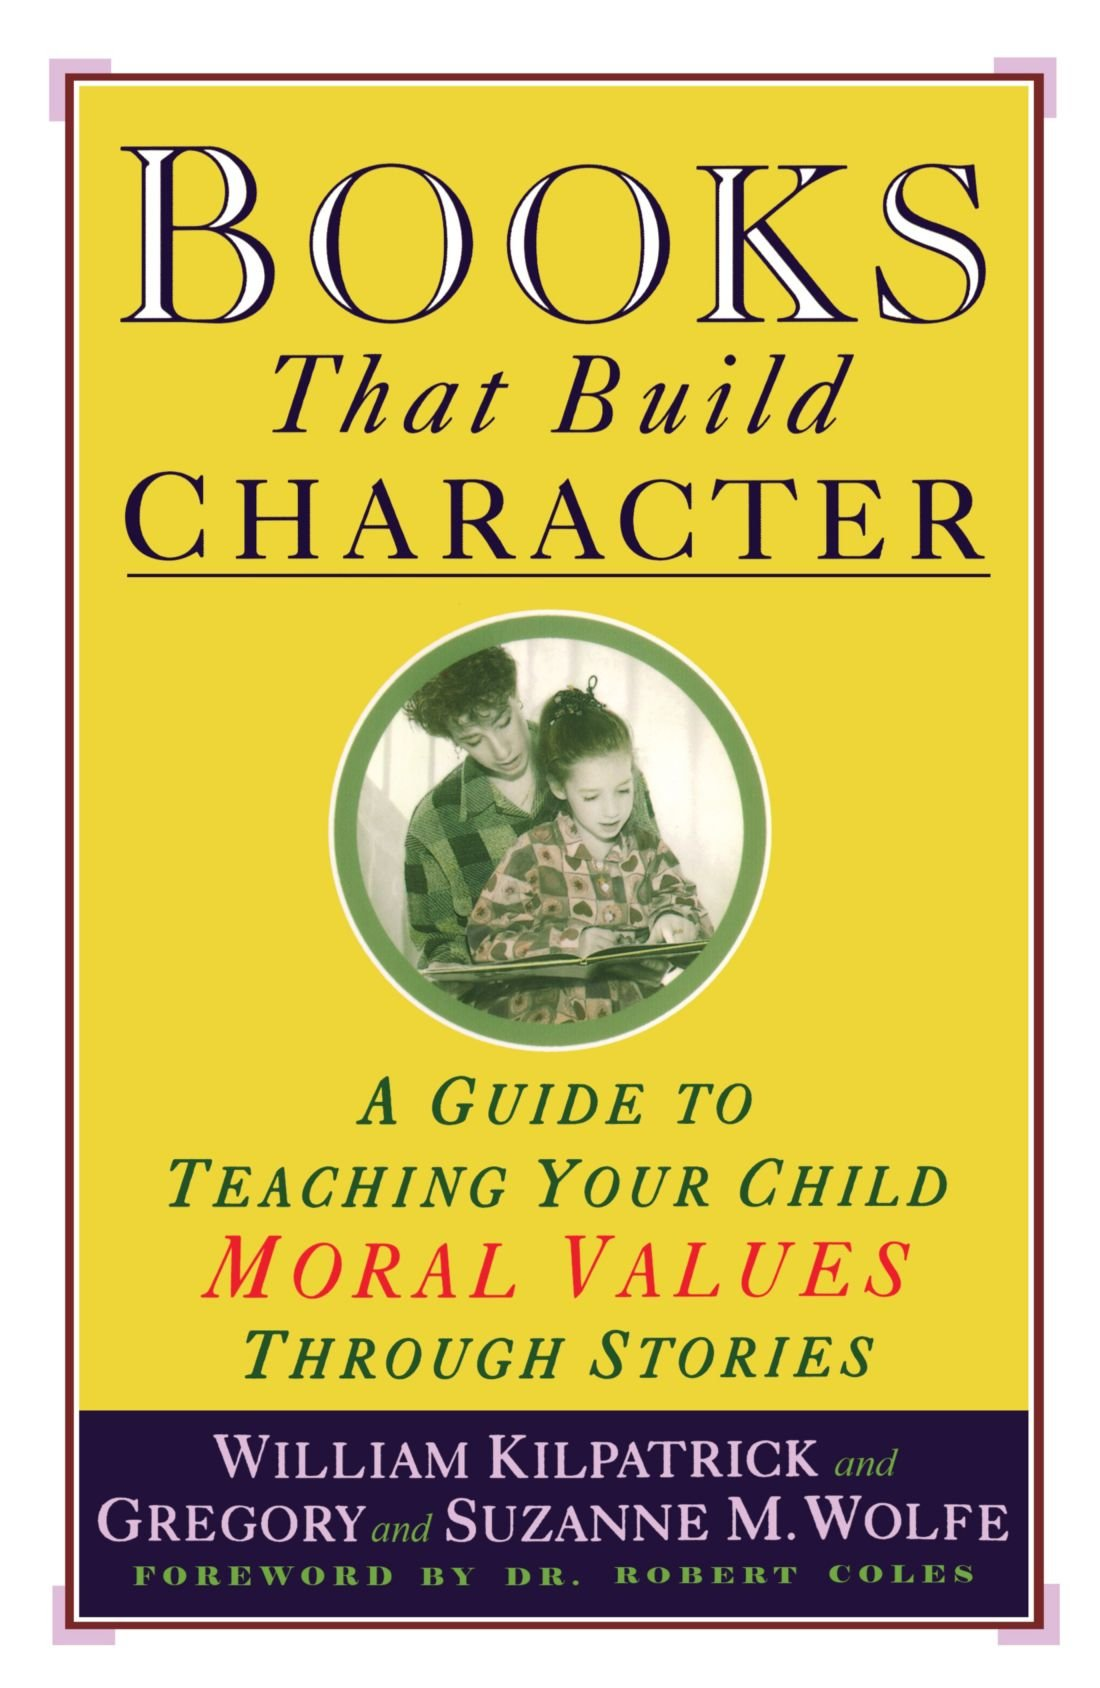 Books That Build Character: A Guide to Teaching Your Child Moral Values Through Stories